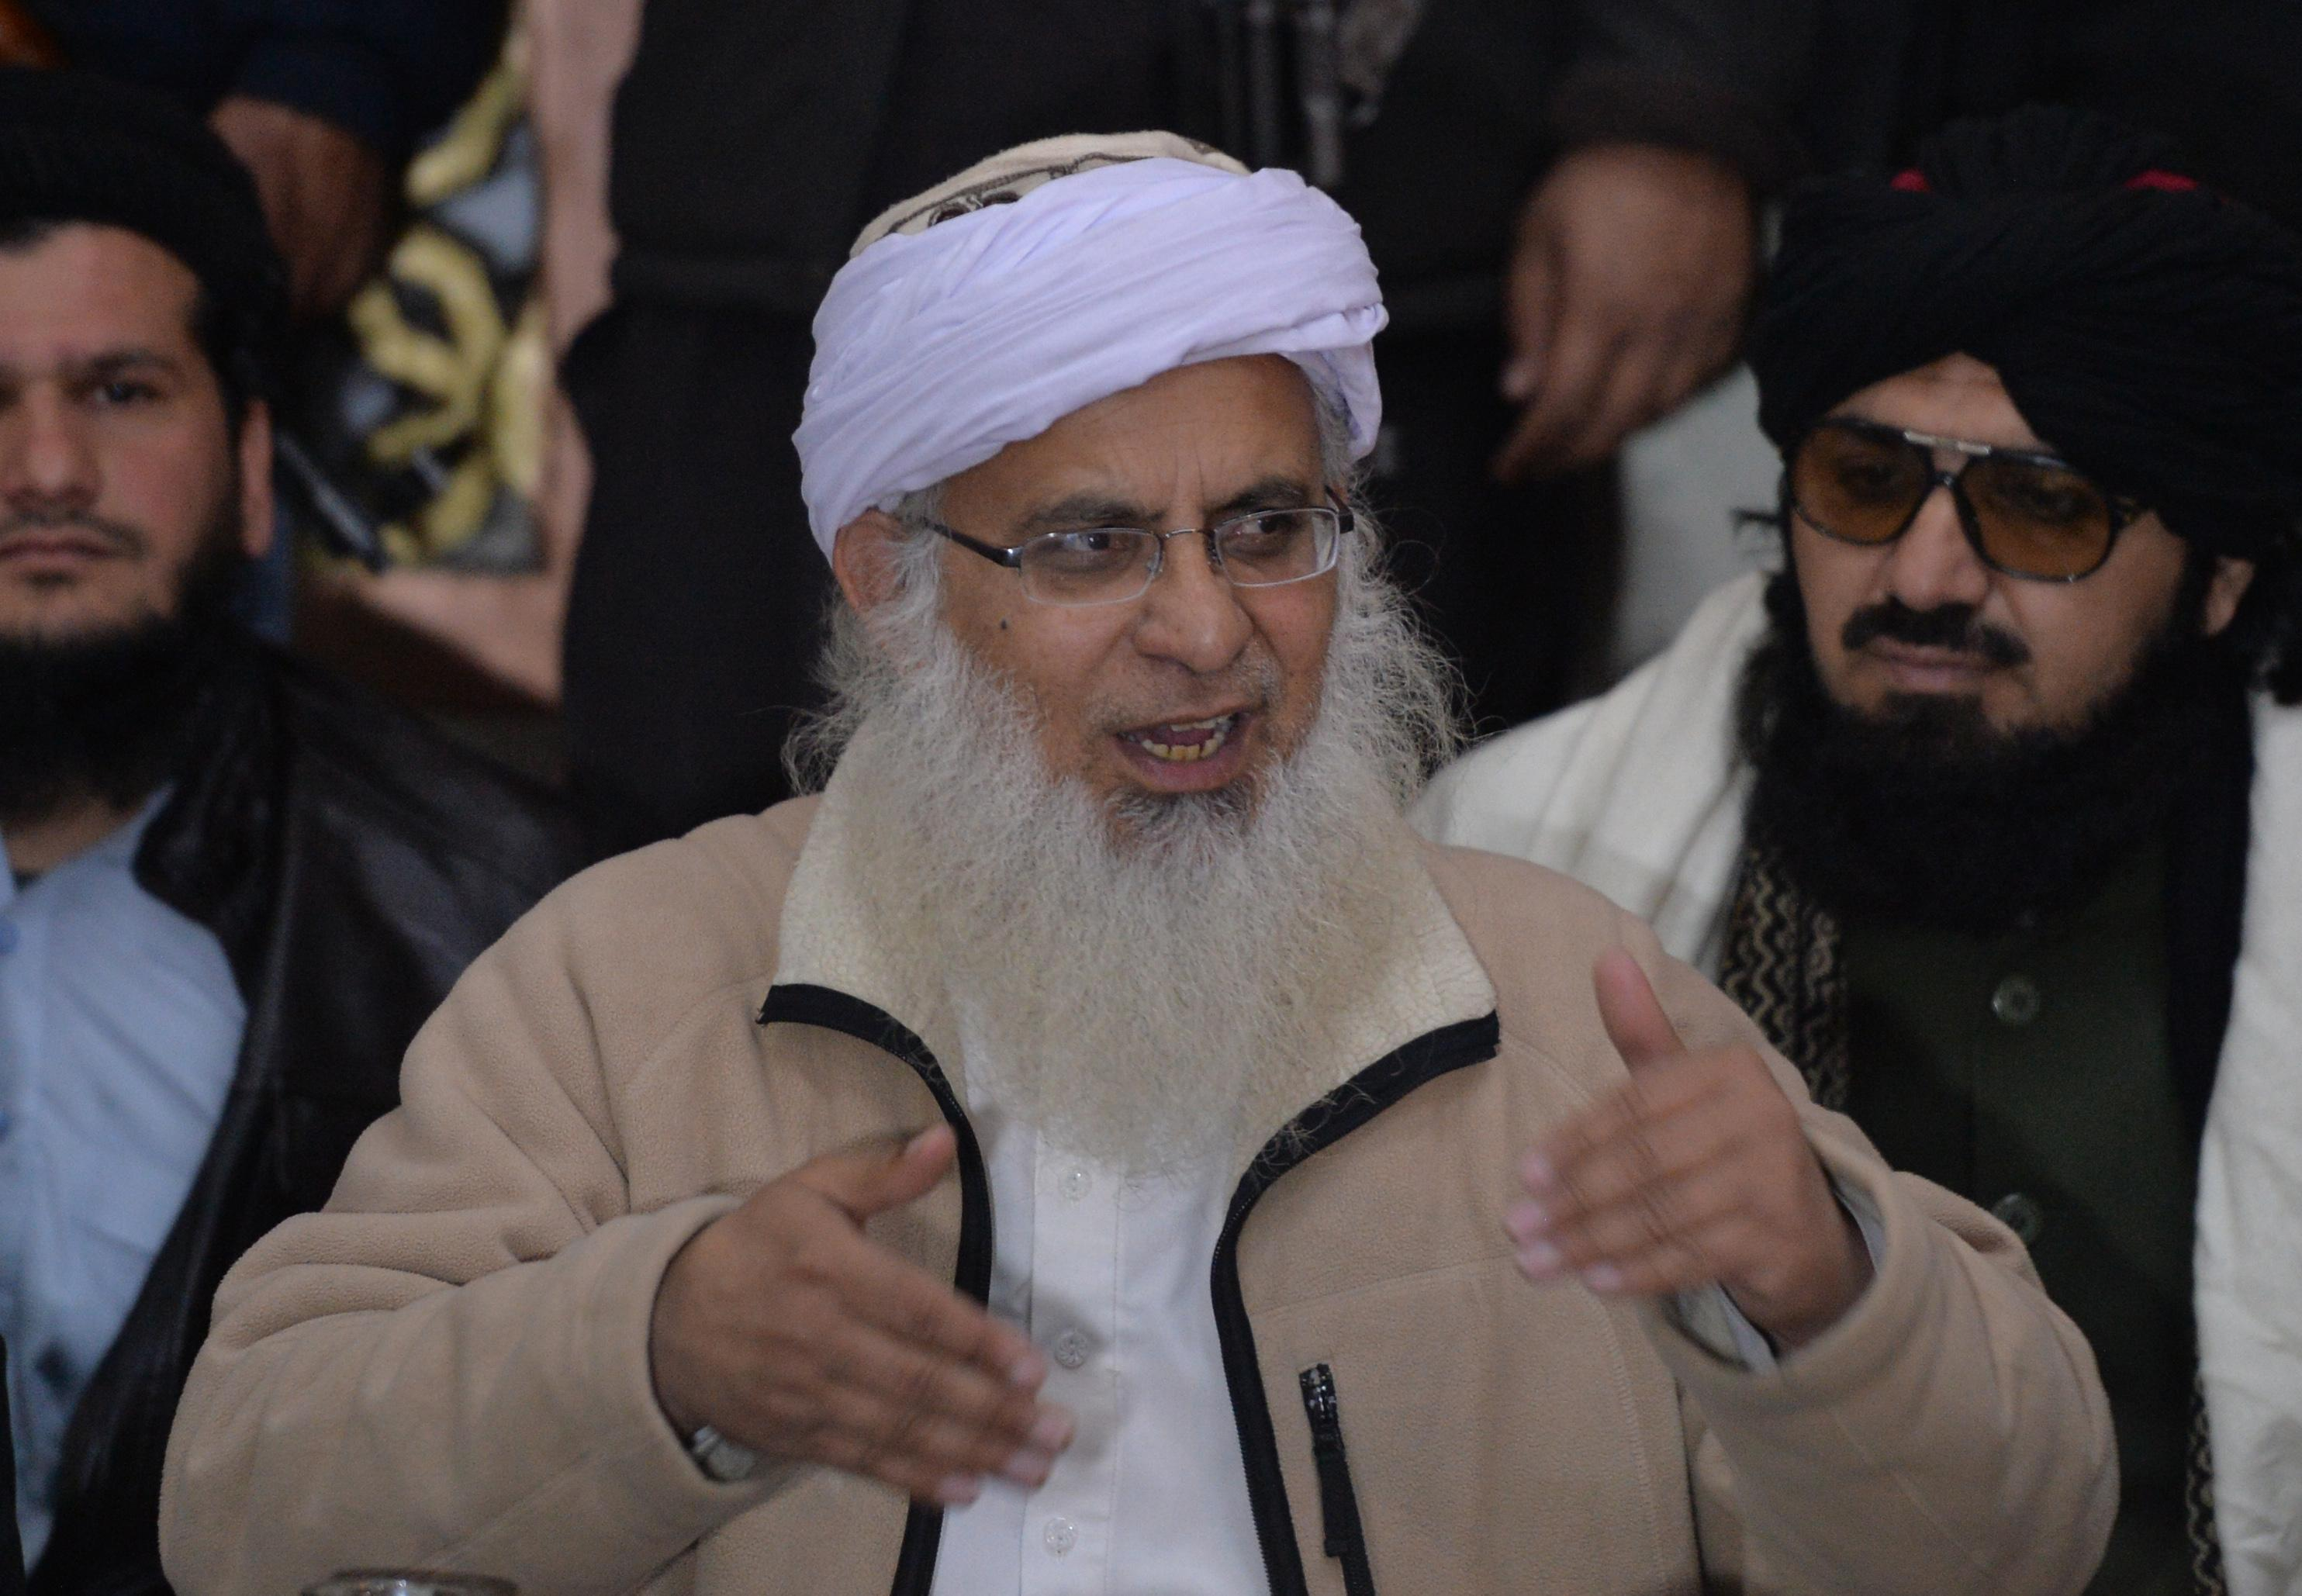 Pakistan court issues arrest warrant for hardline cleric